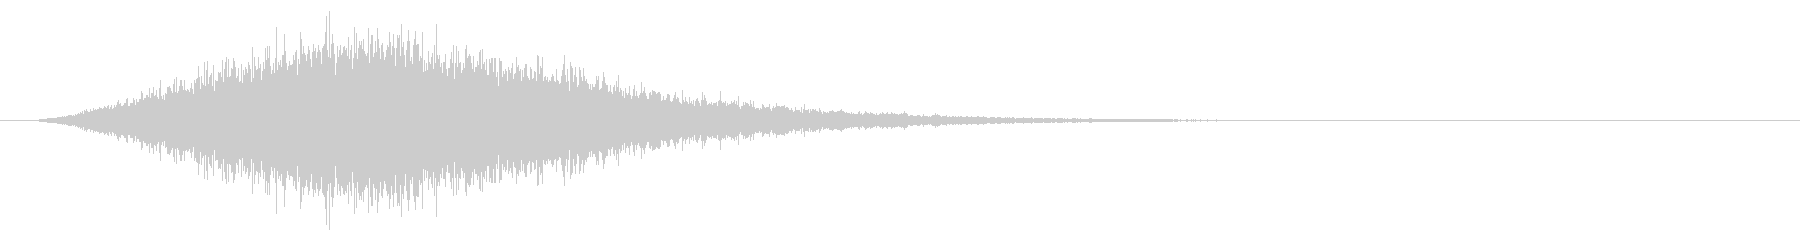 Sound of chanting or activating magic # 6's unreproduced waveform